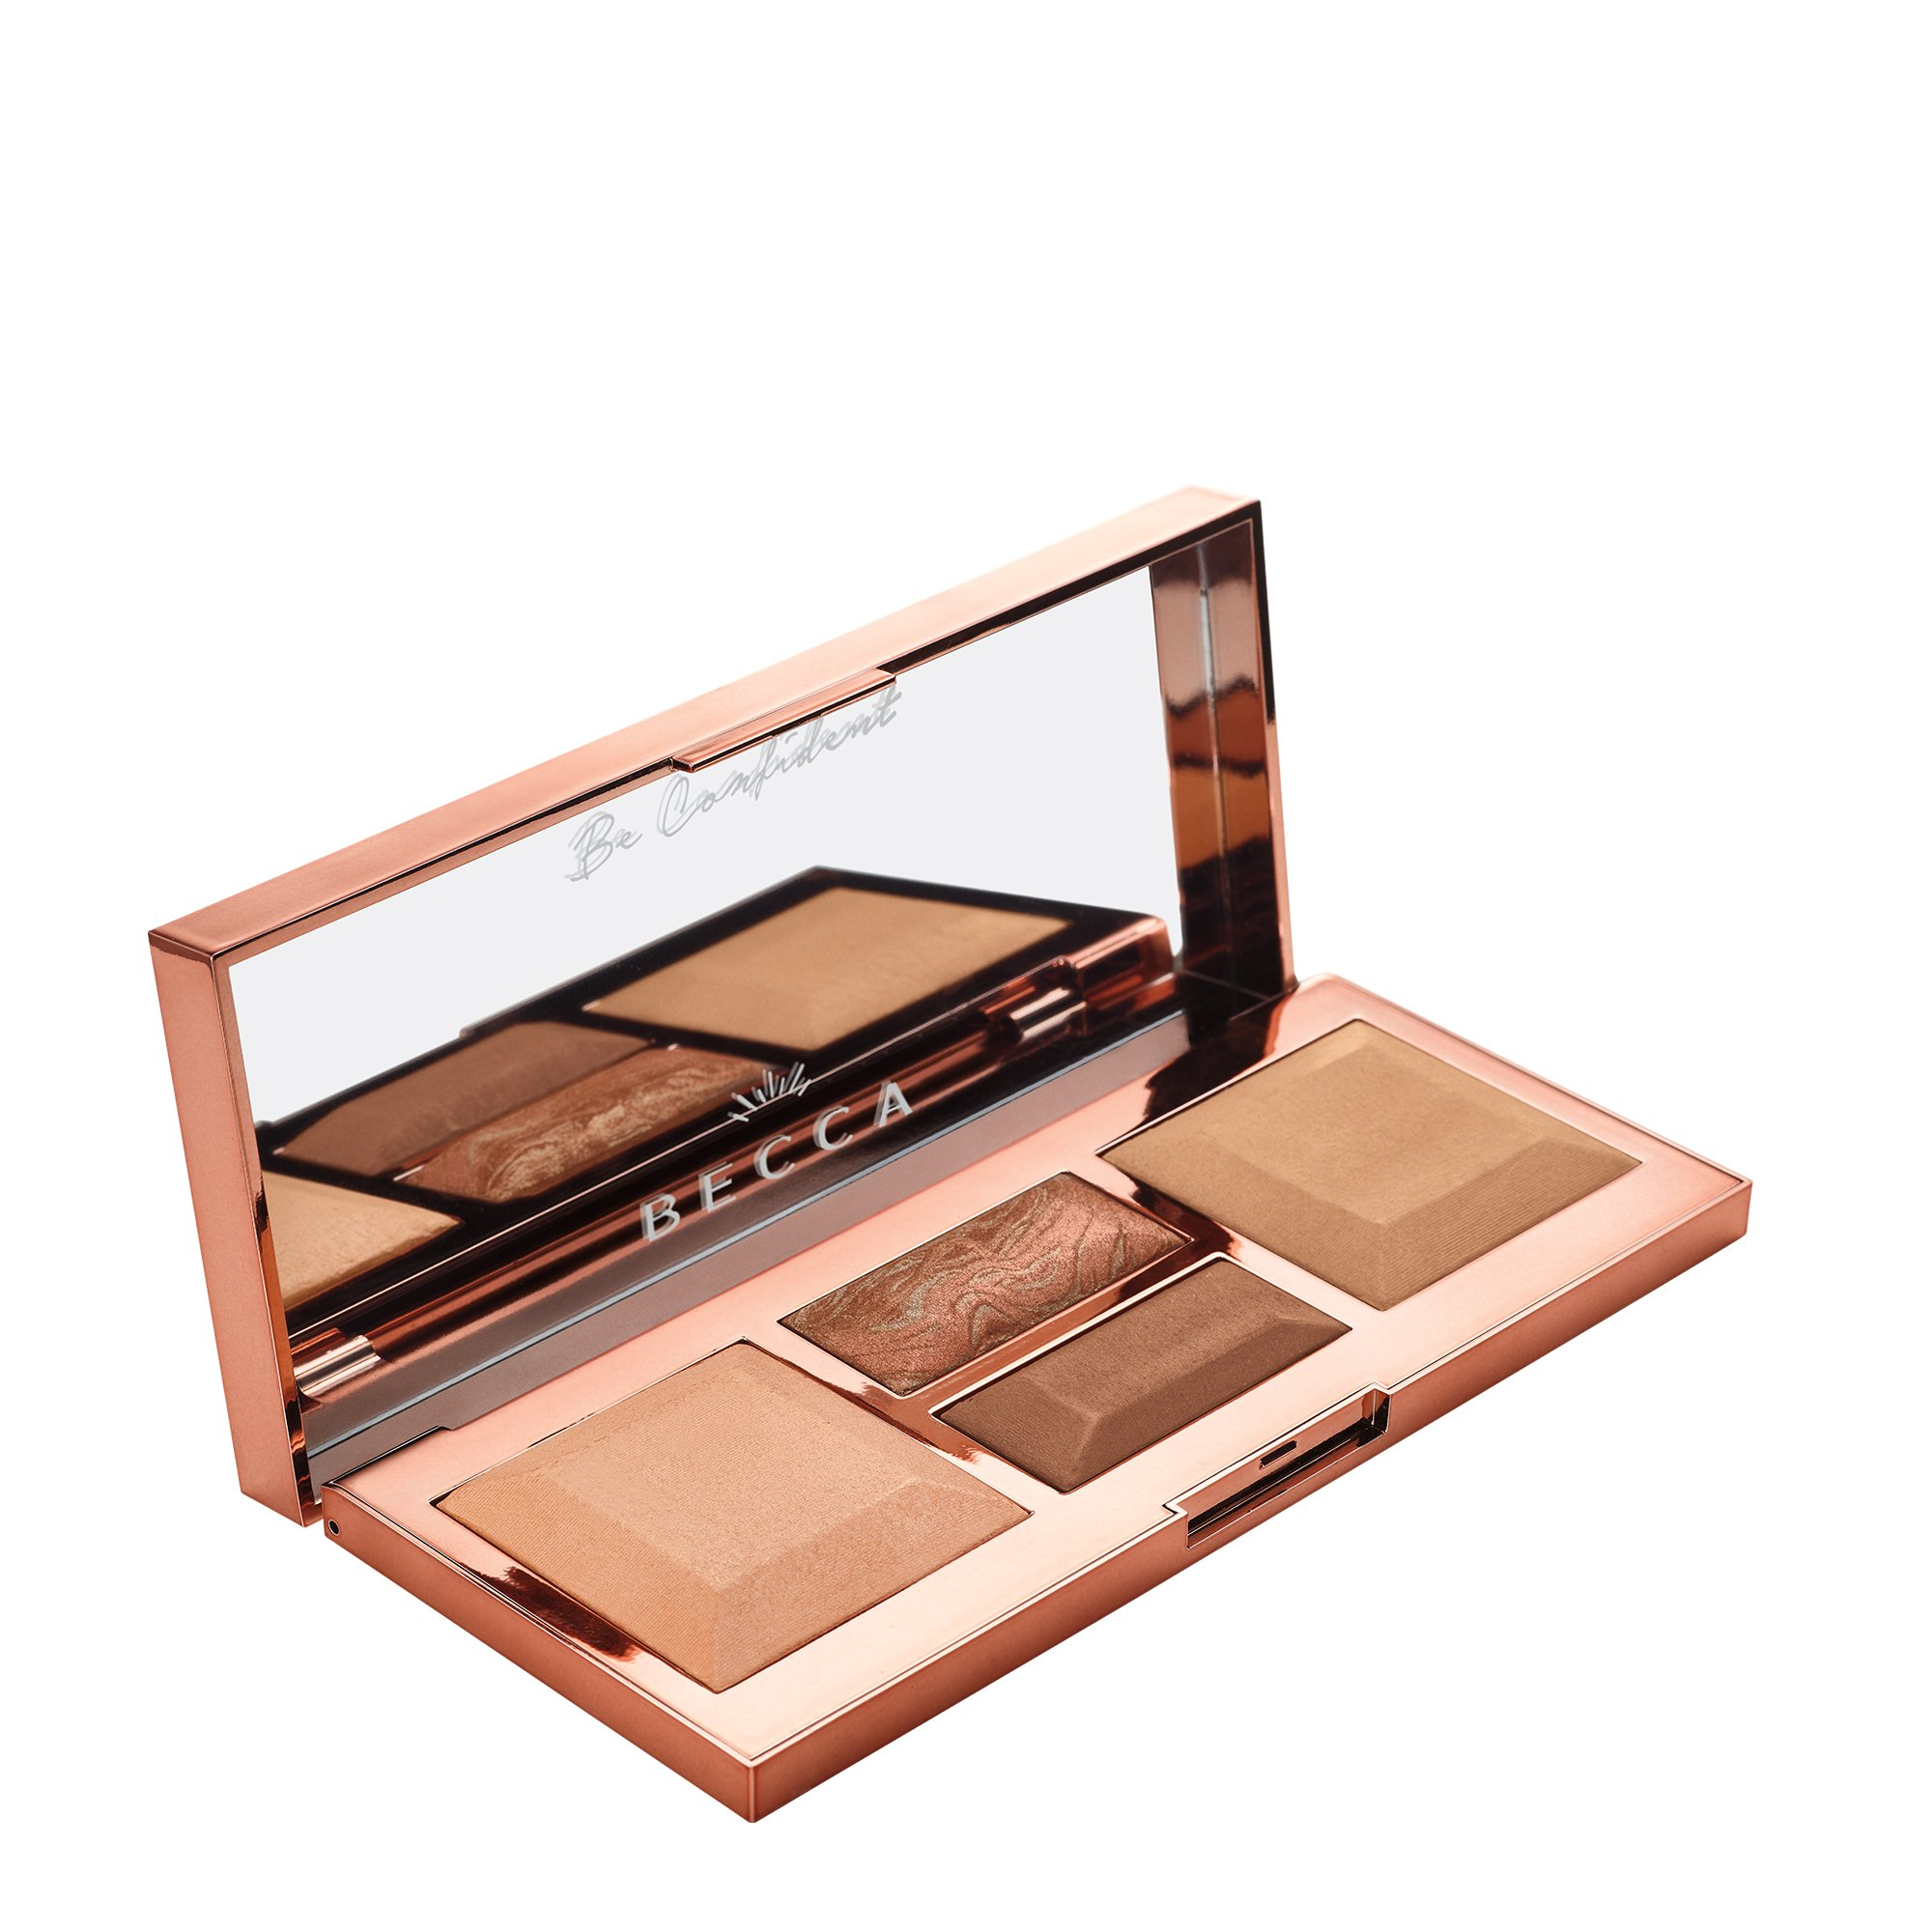 BECCA Cosmetics Be A Light Palette Limited-Edition - Medium to Deep